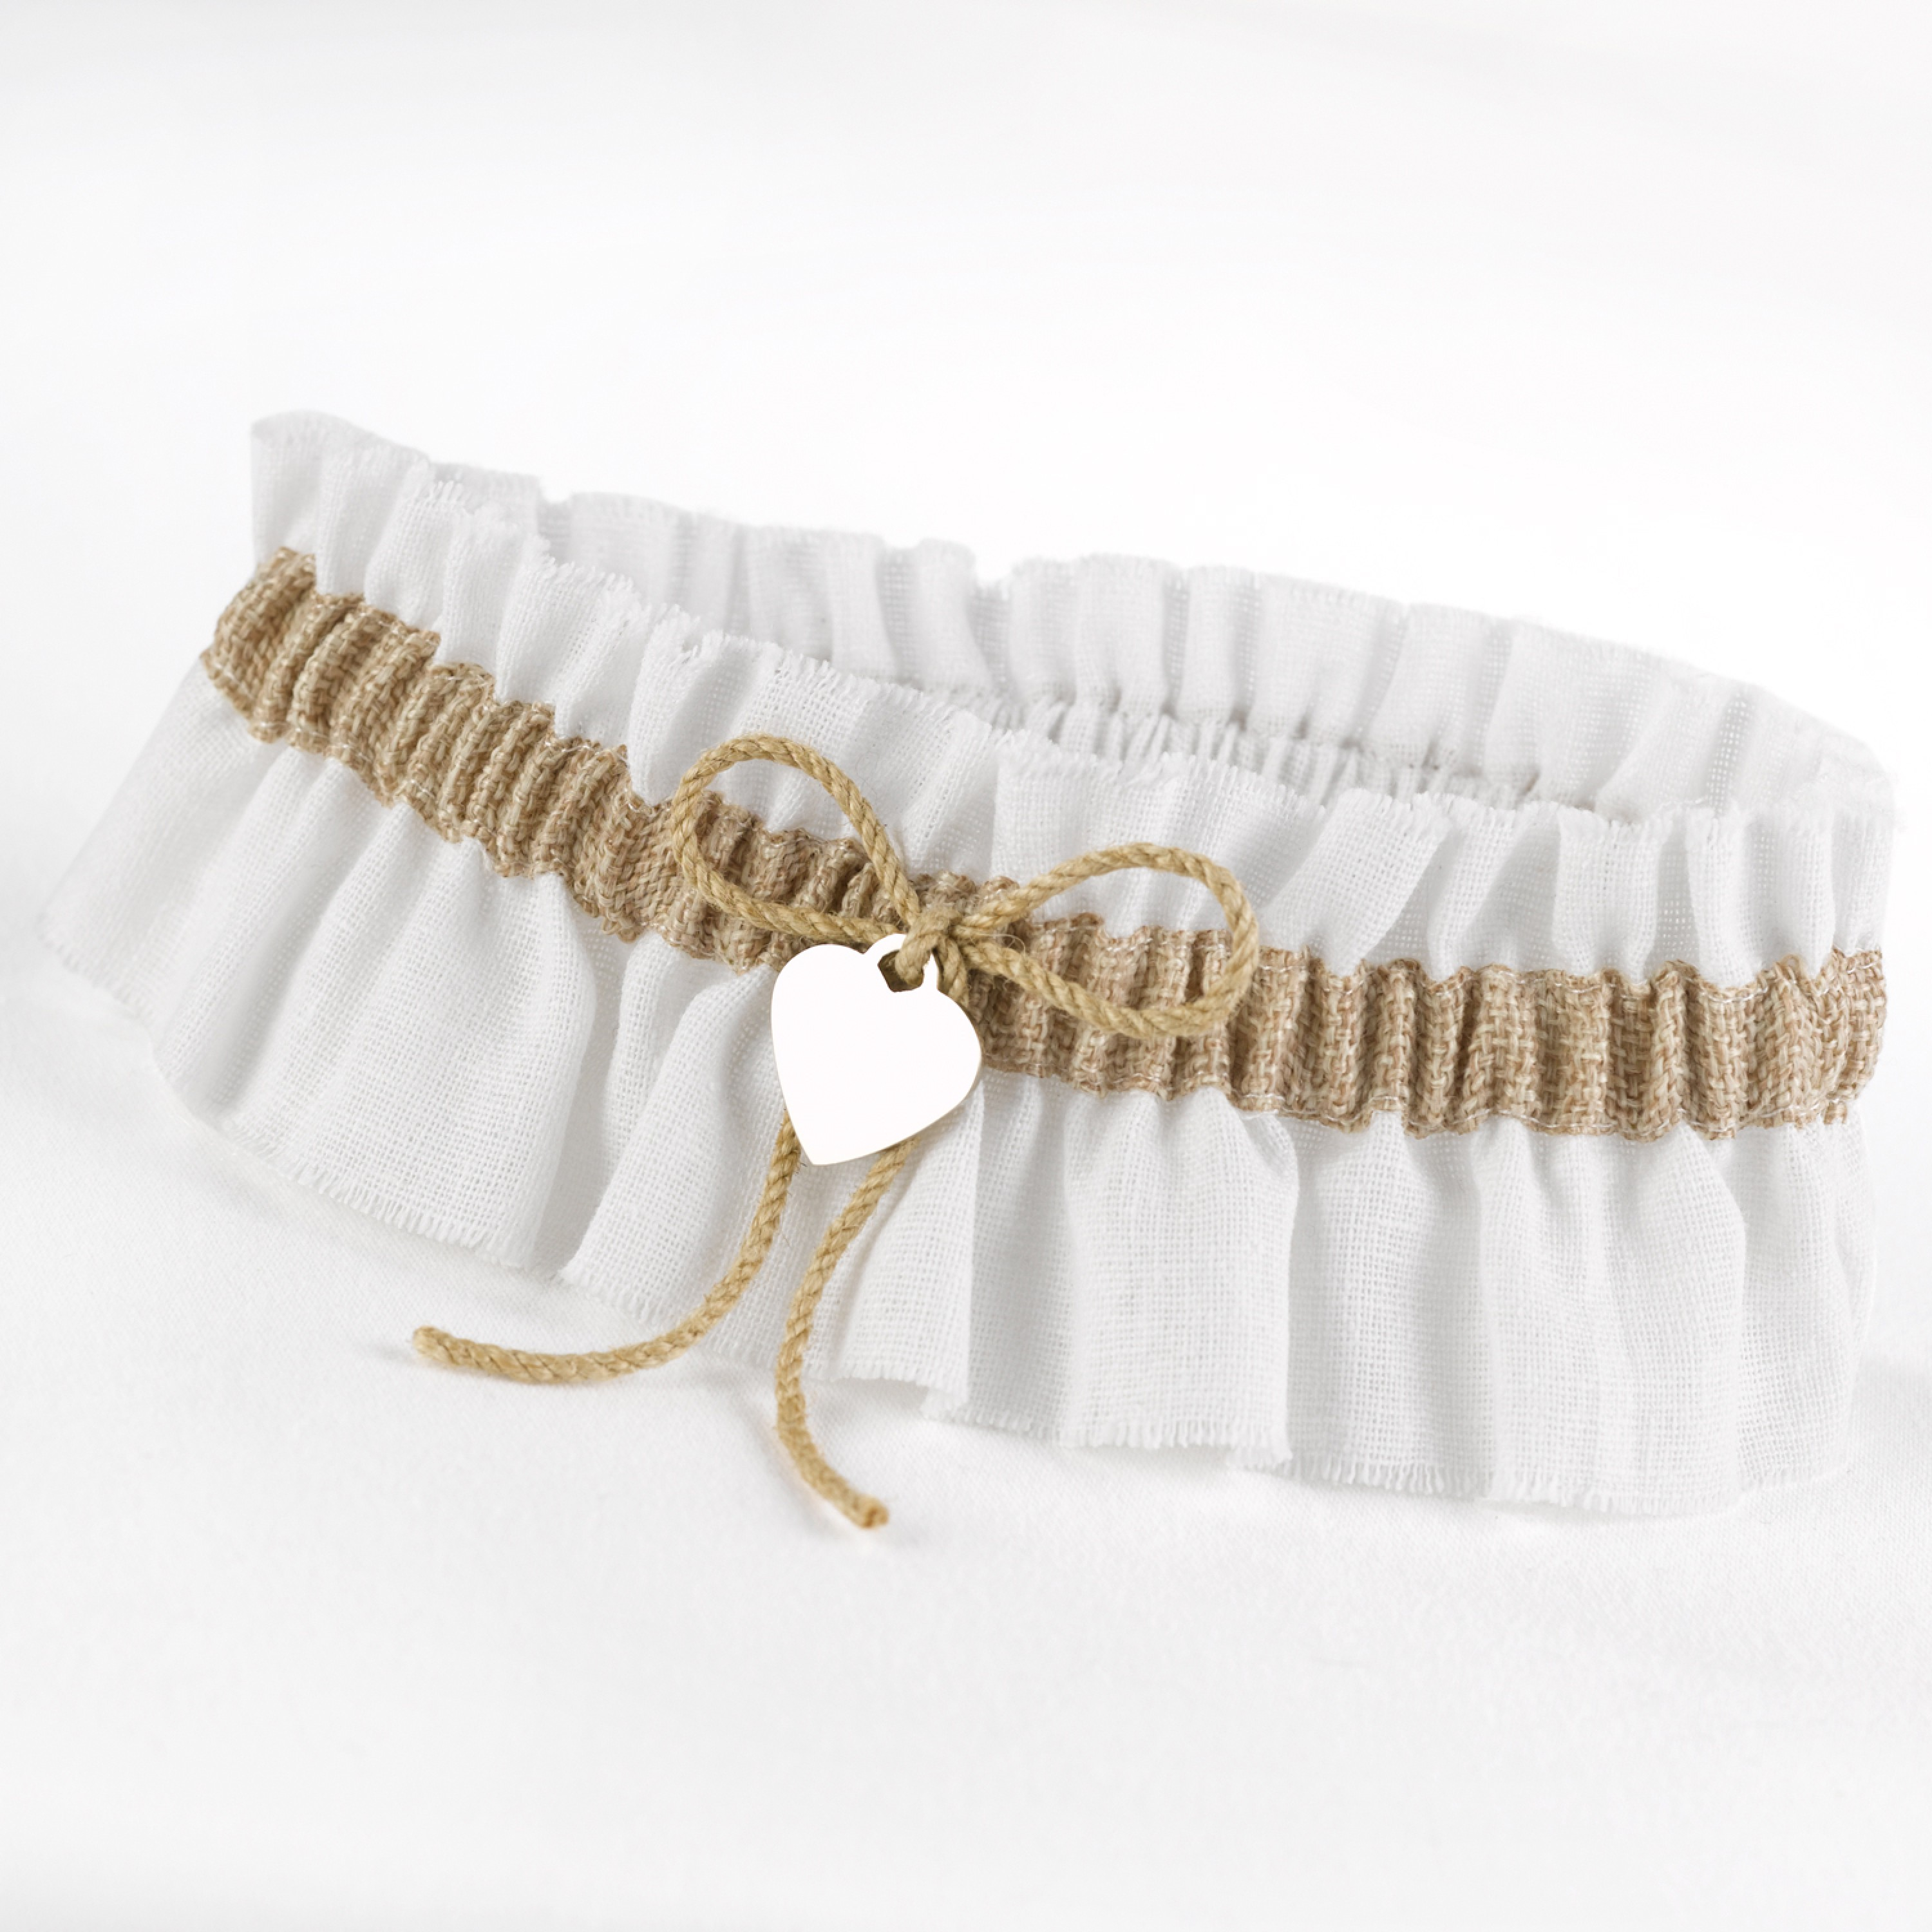 Western Bridal Garters and Money Purses